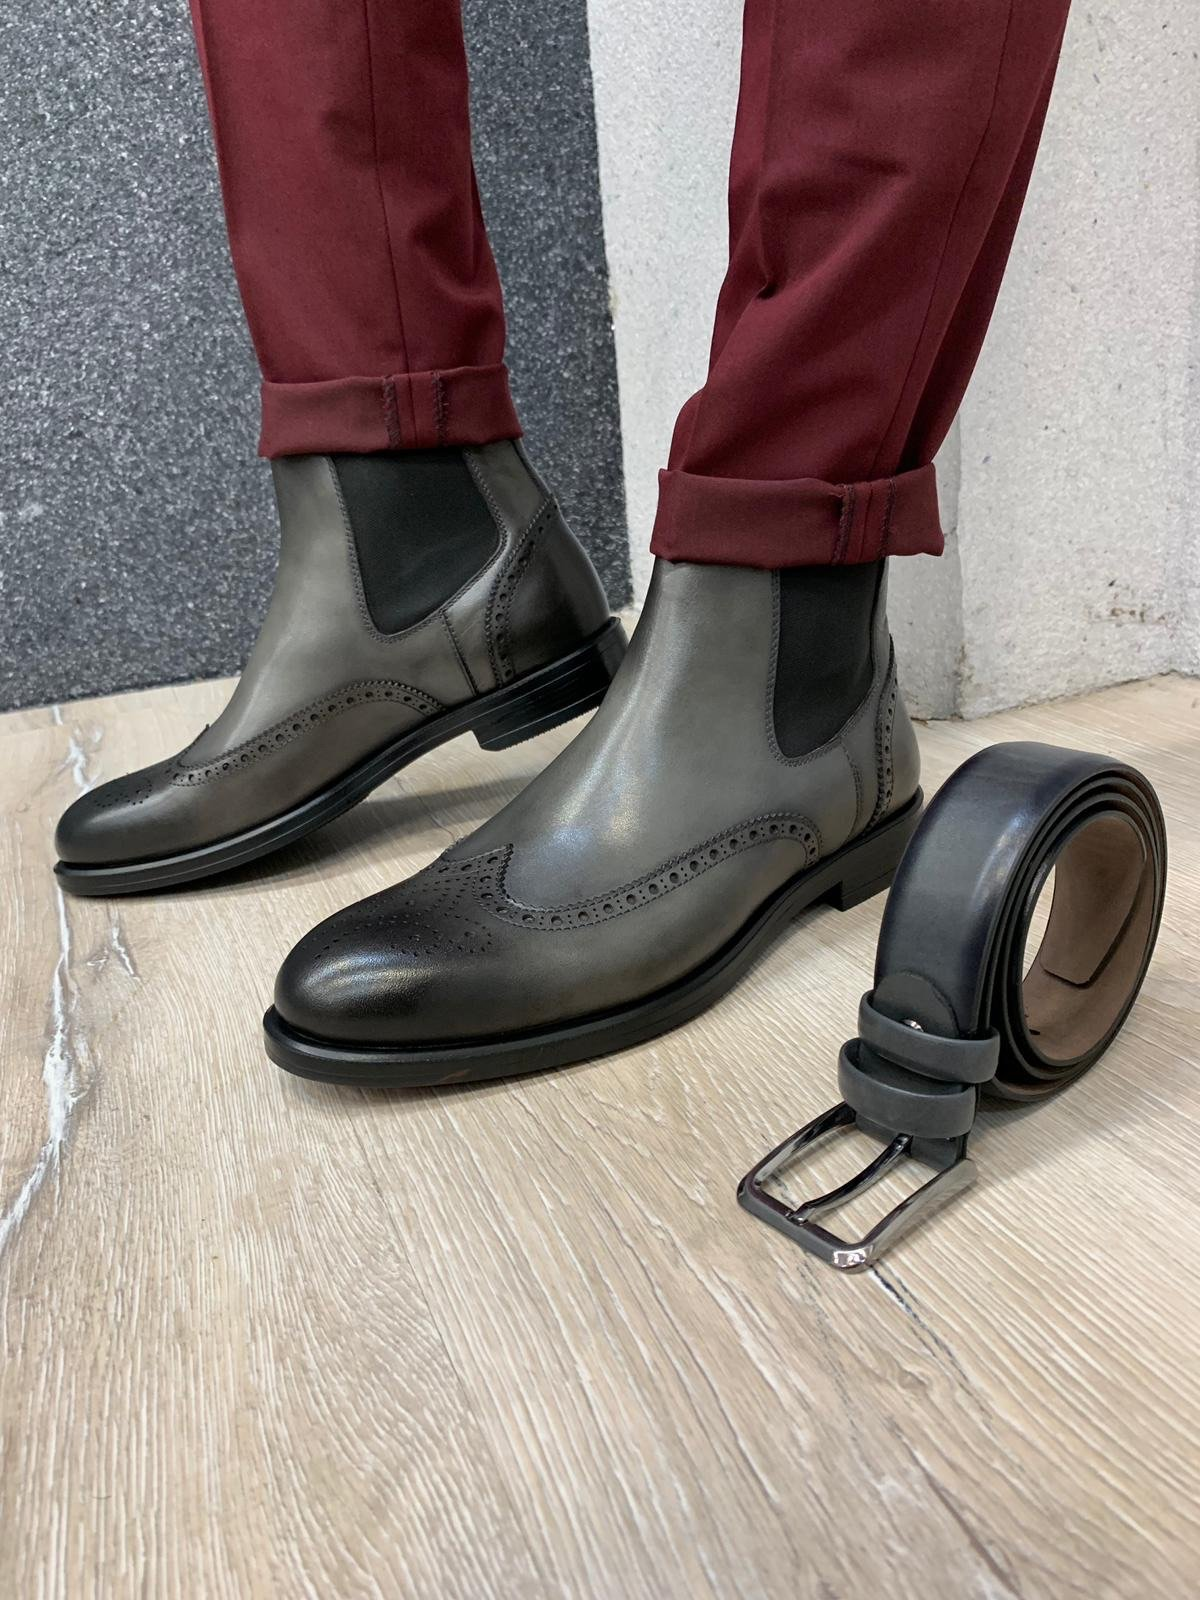 Napoli Leather Boots (4 Colors)